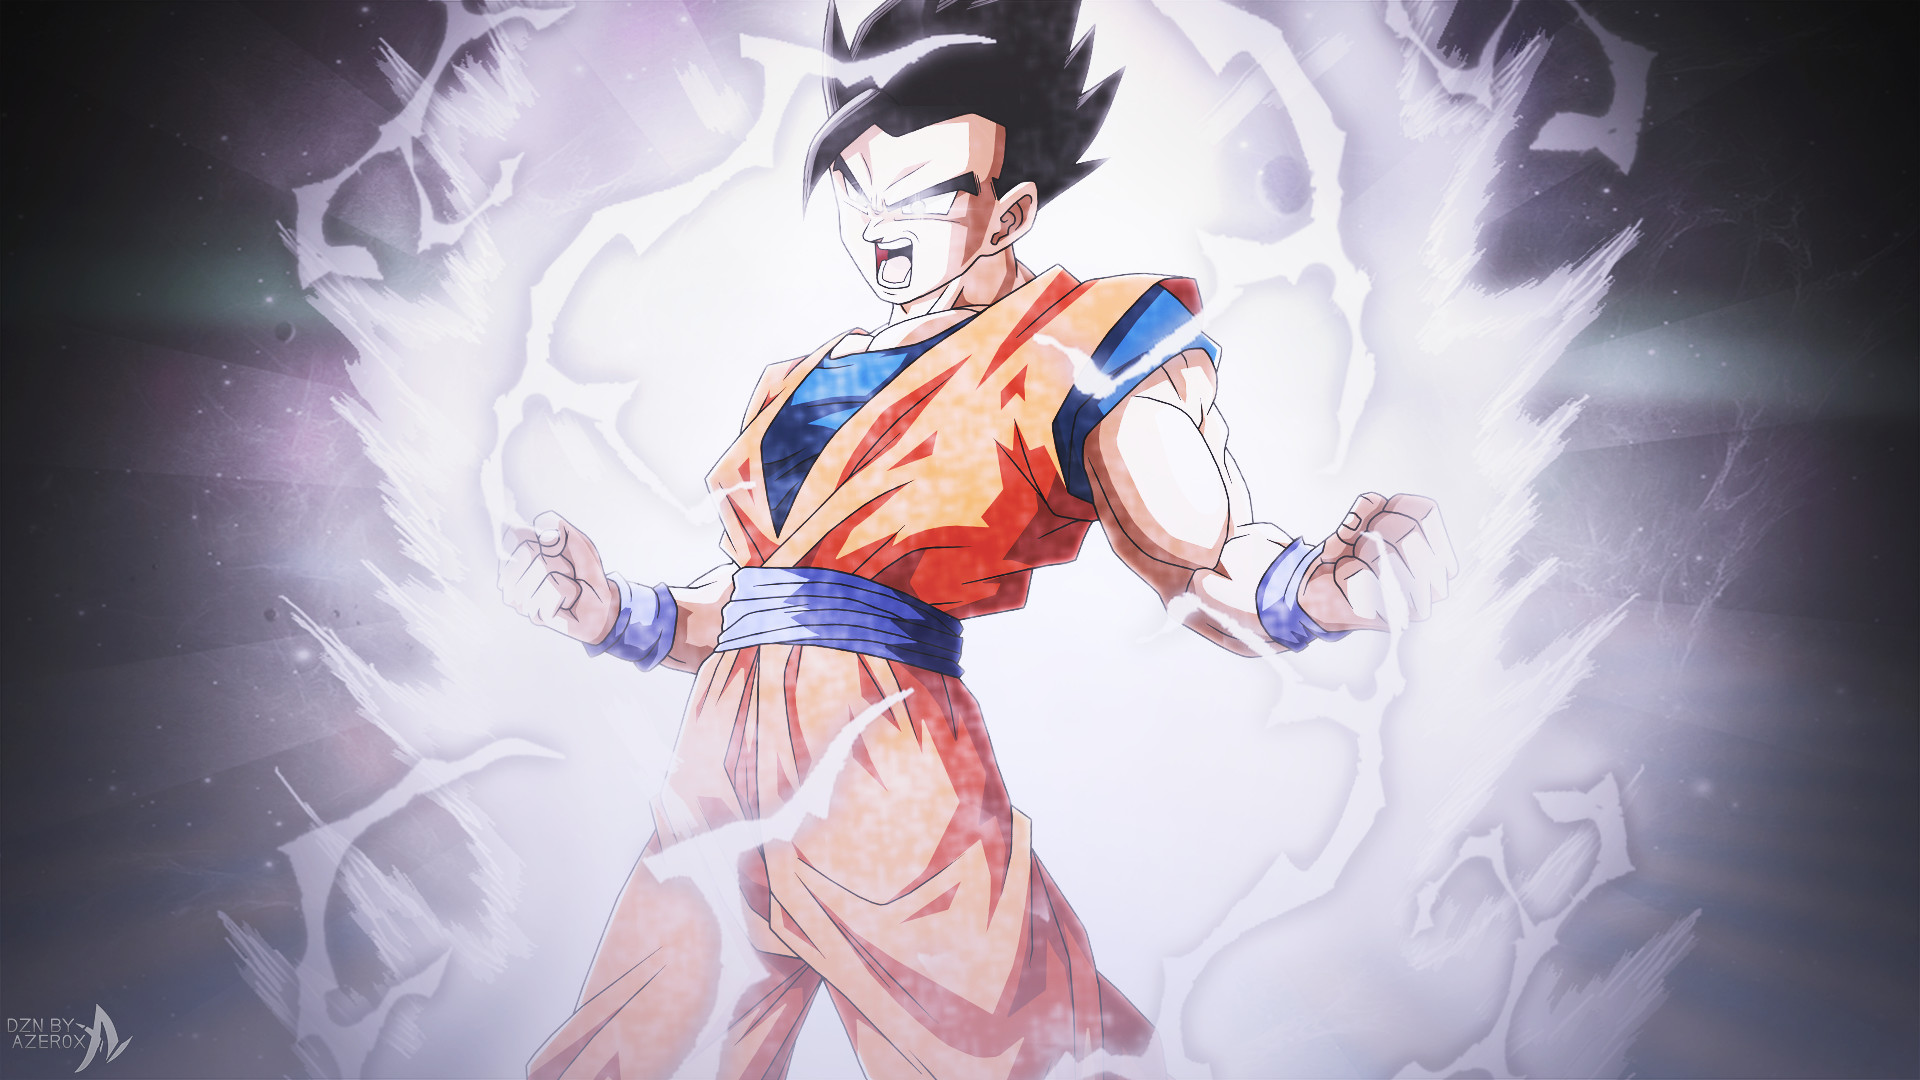 Gohan Hd Wallpaper Posted By Zoey Johnson